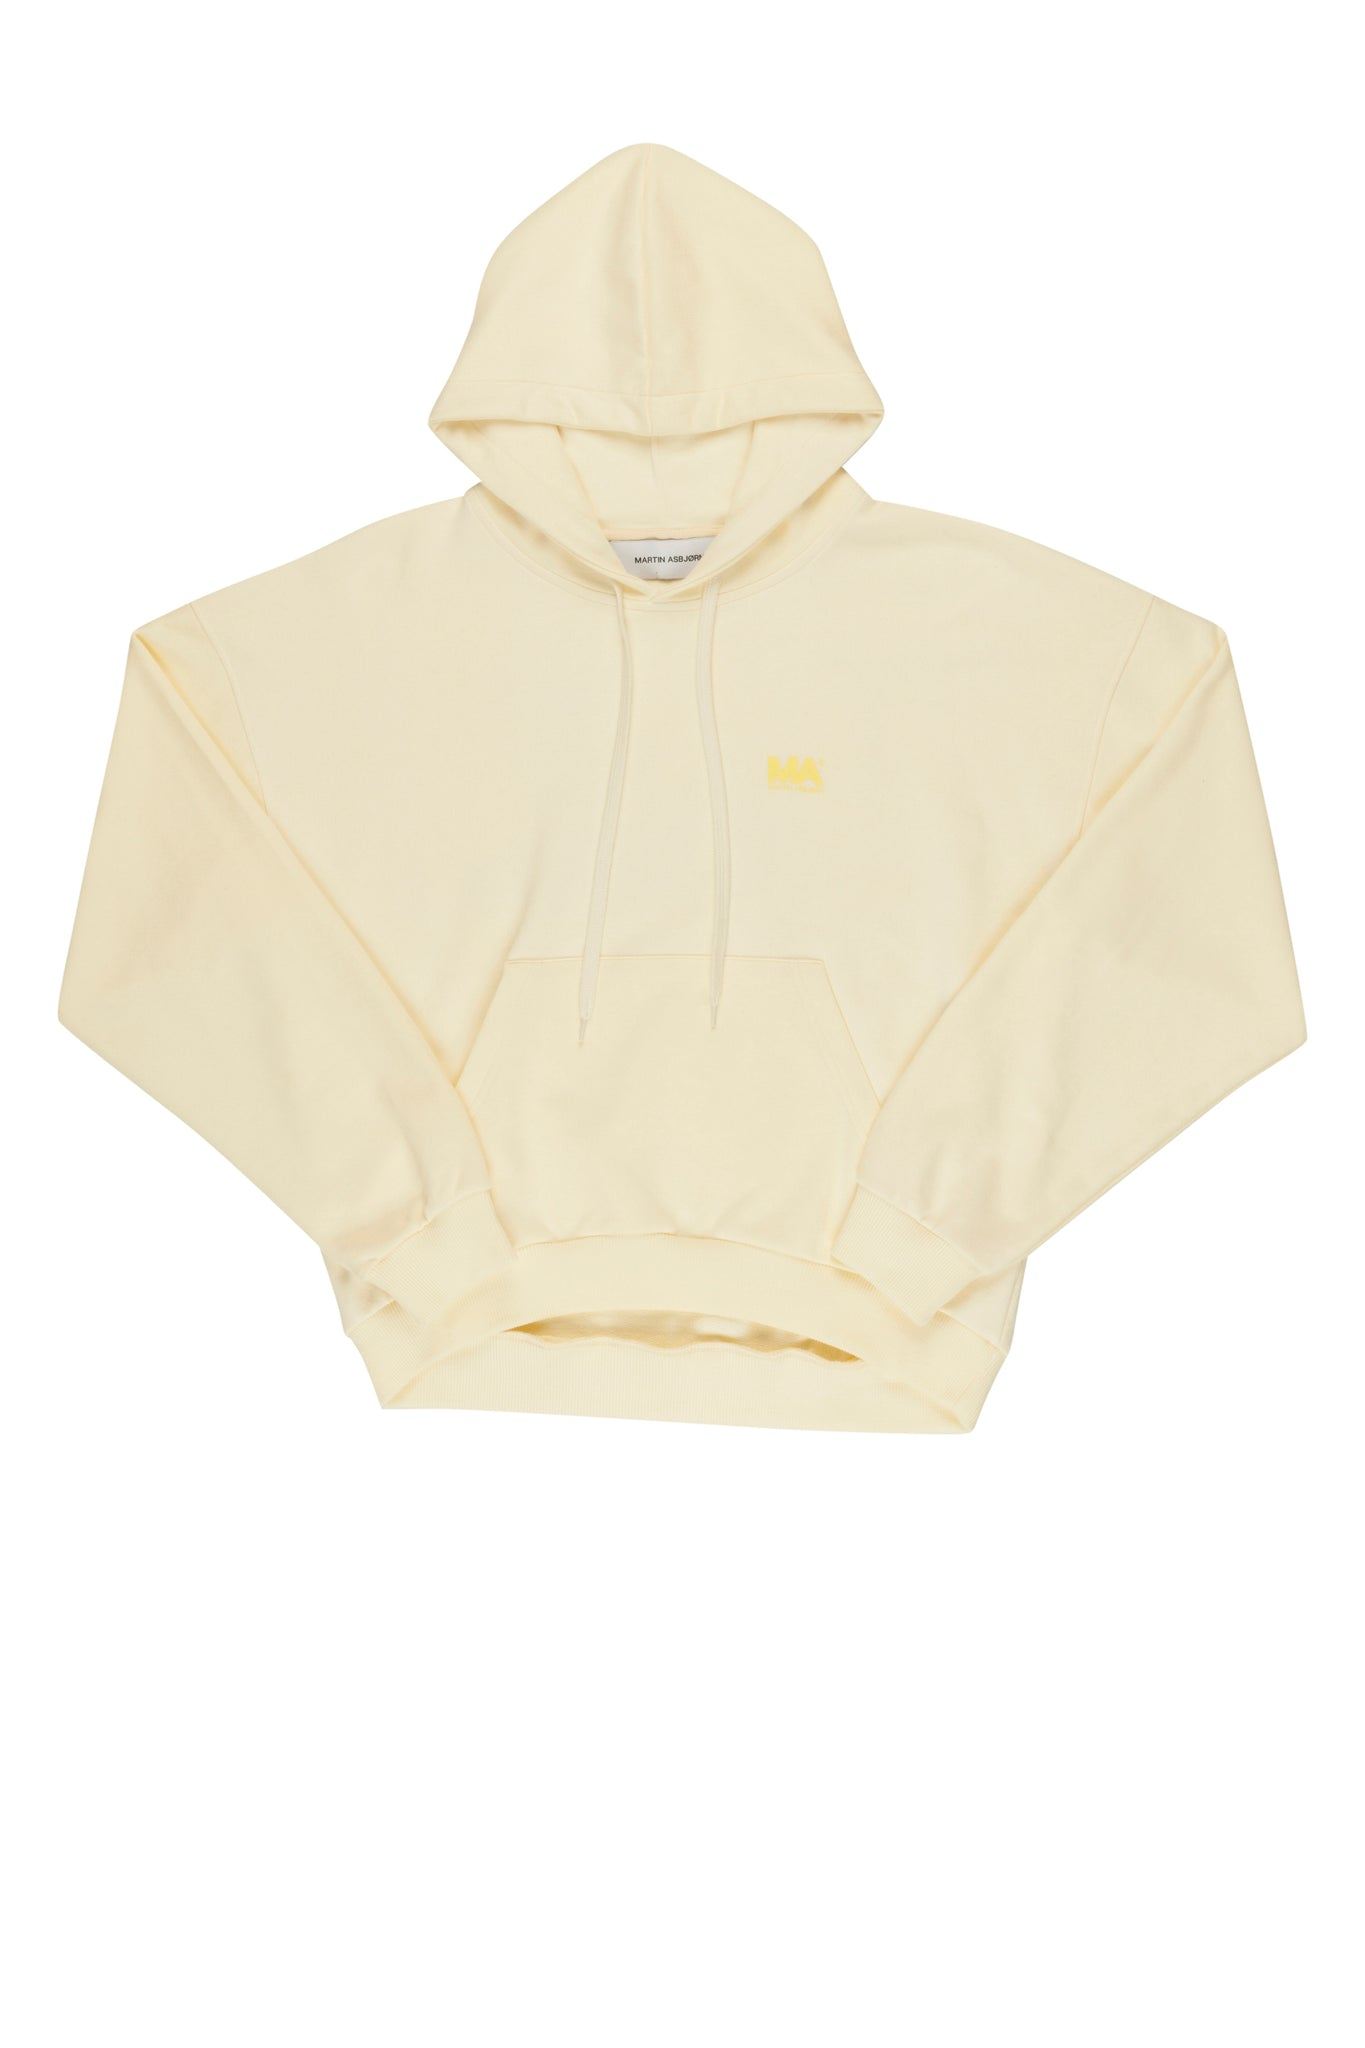 martin Asbjørn cropped offwhite hoodie with print for men and women